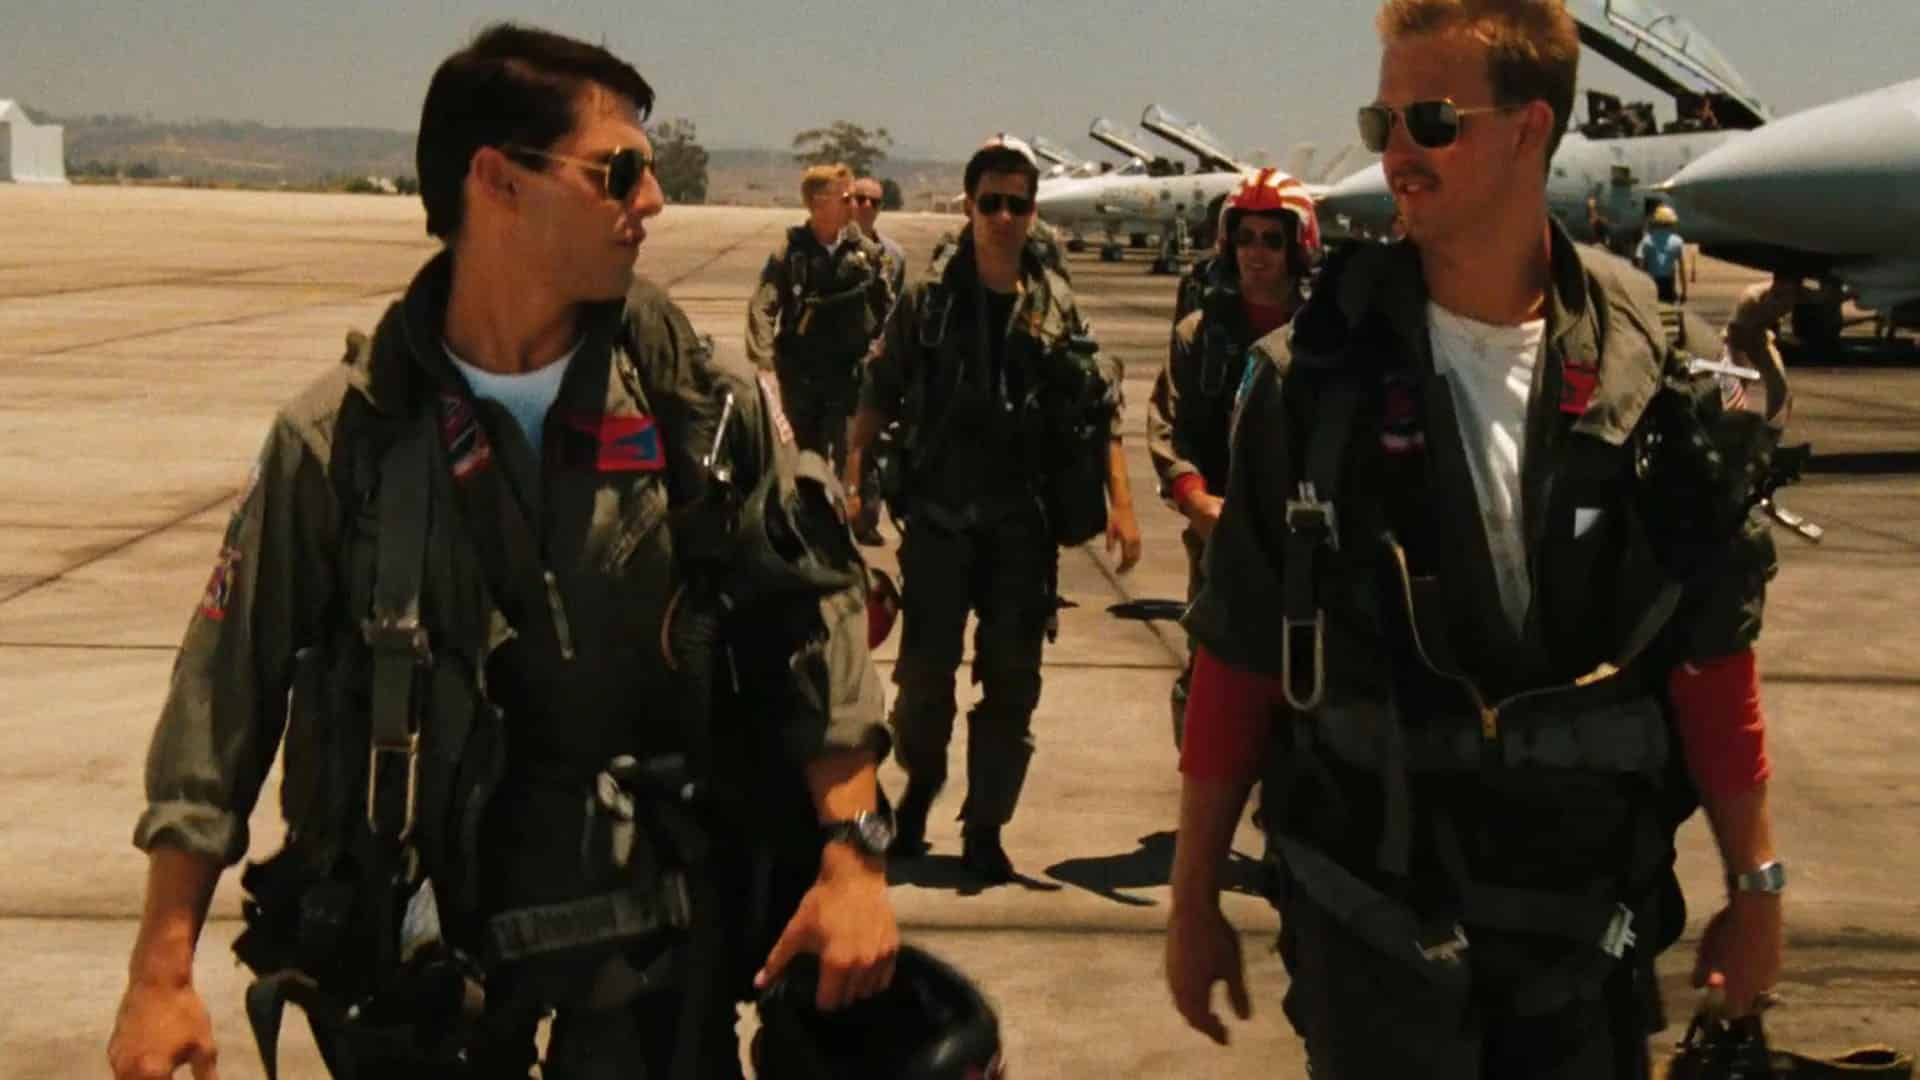 Top Gun - Ases Indomáveis - O Ultimato Retrô 2